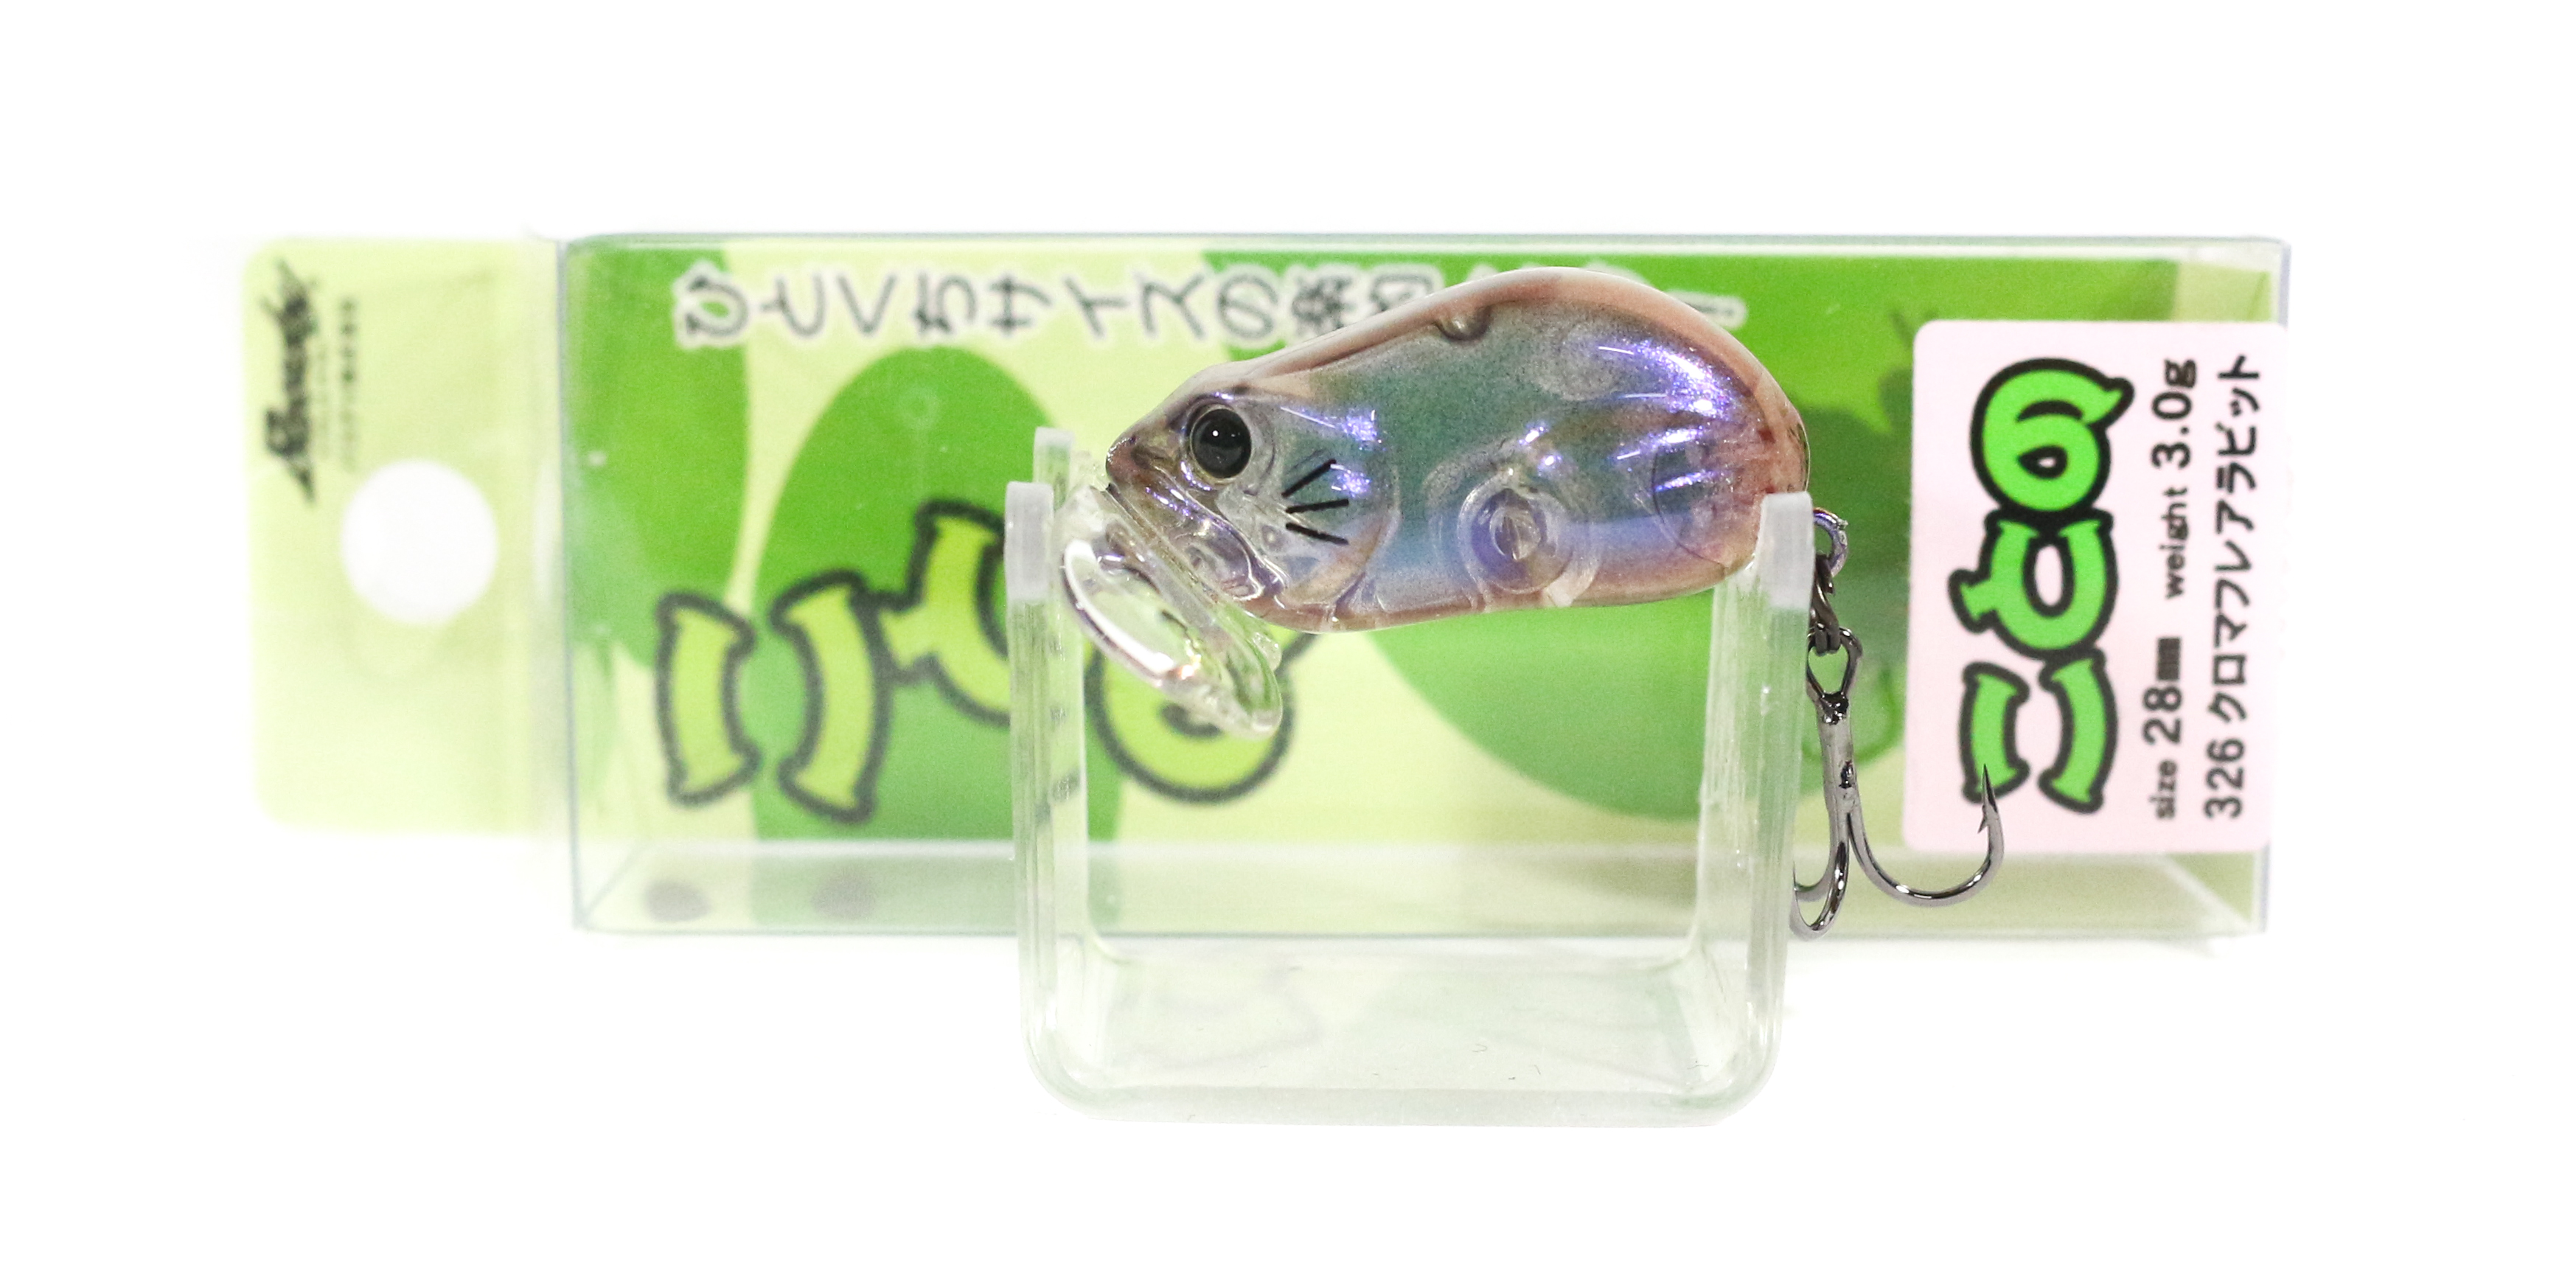 Bassday Kotono Frog Floating Lure 3 grams 326 (1097)